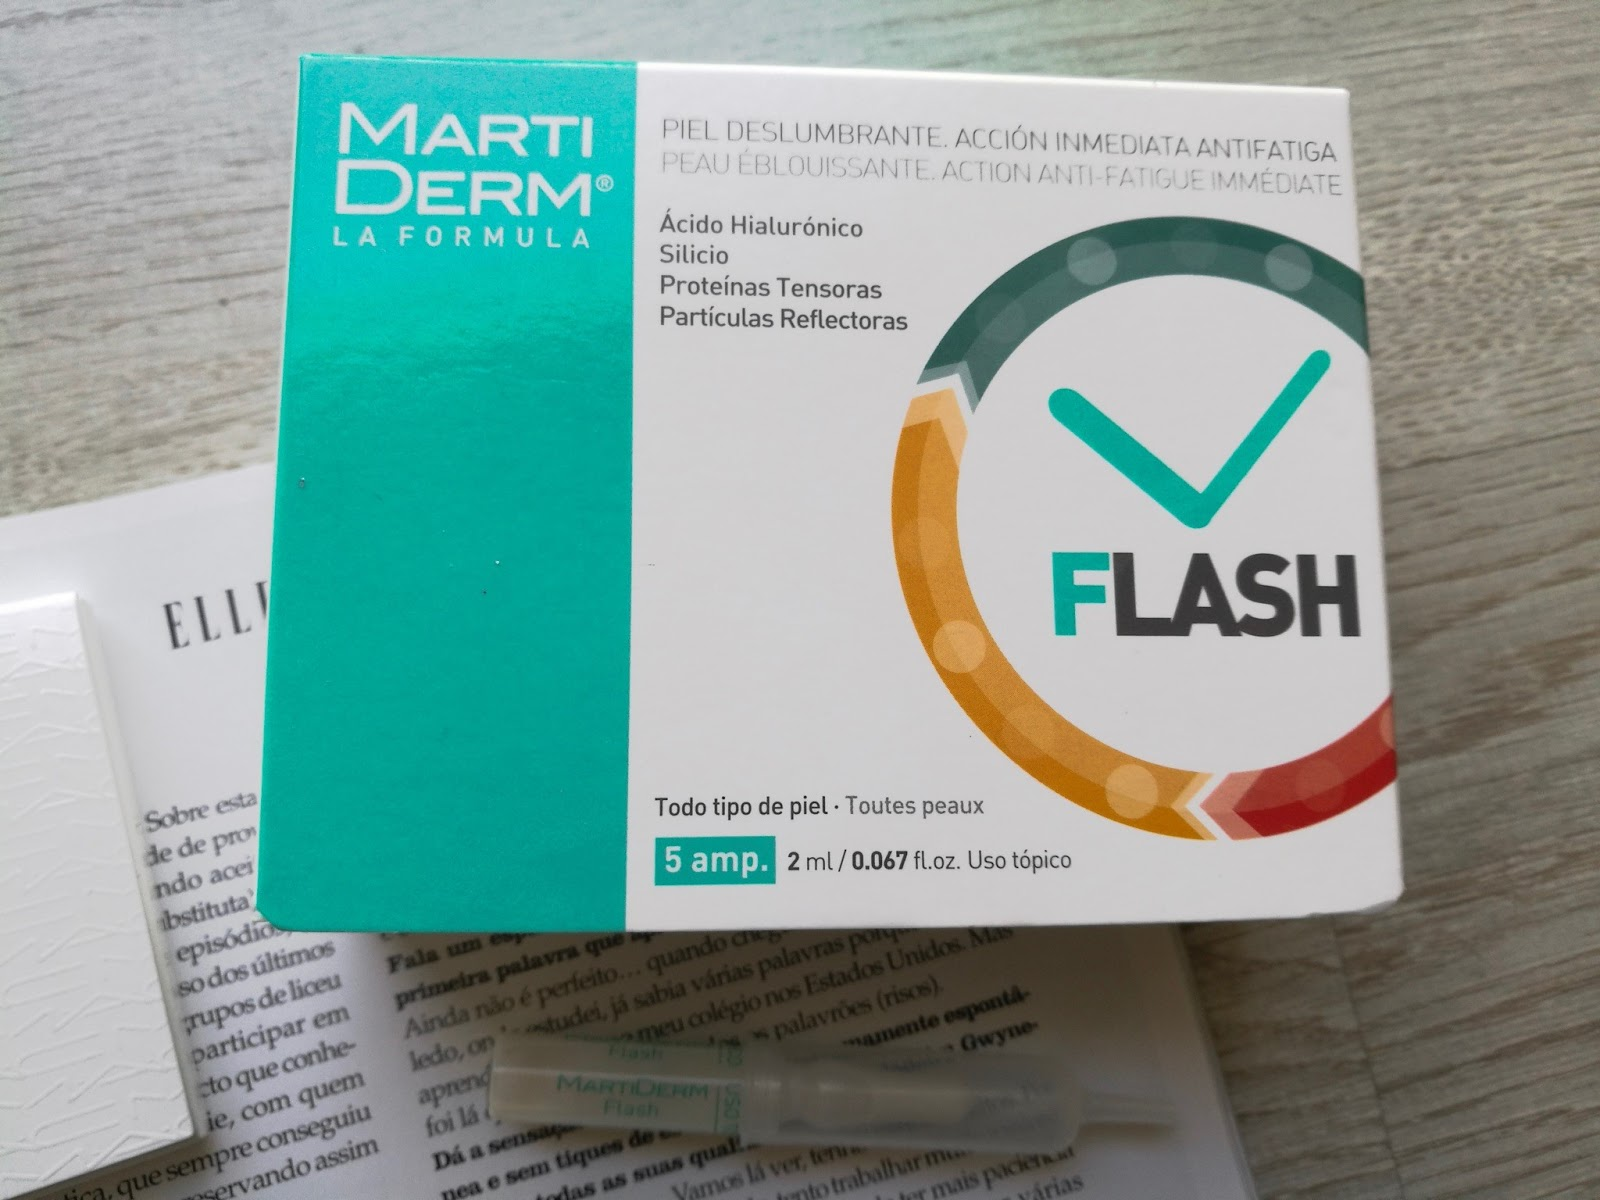 AMPOLAS FLASH MARTIDERM